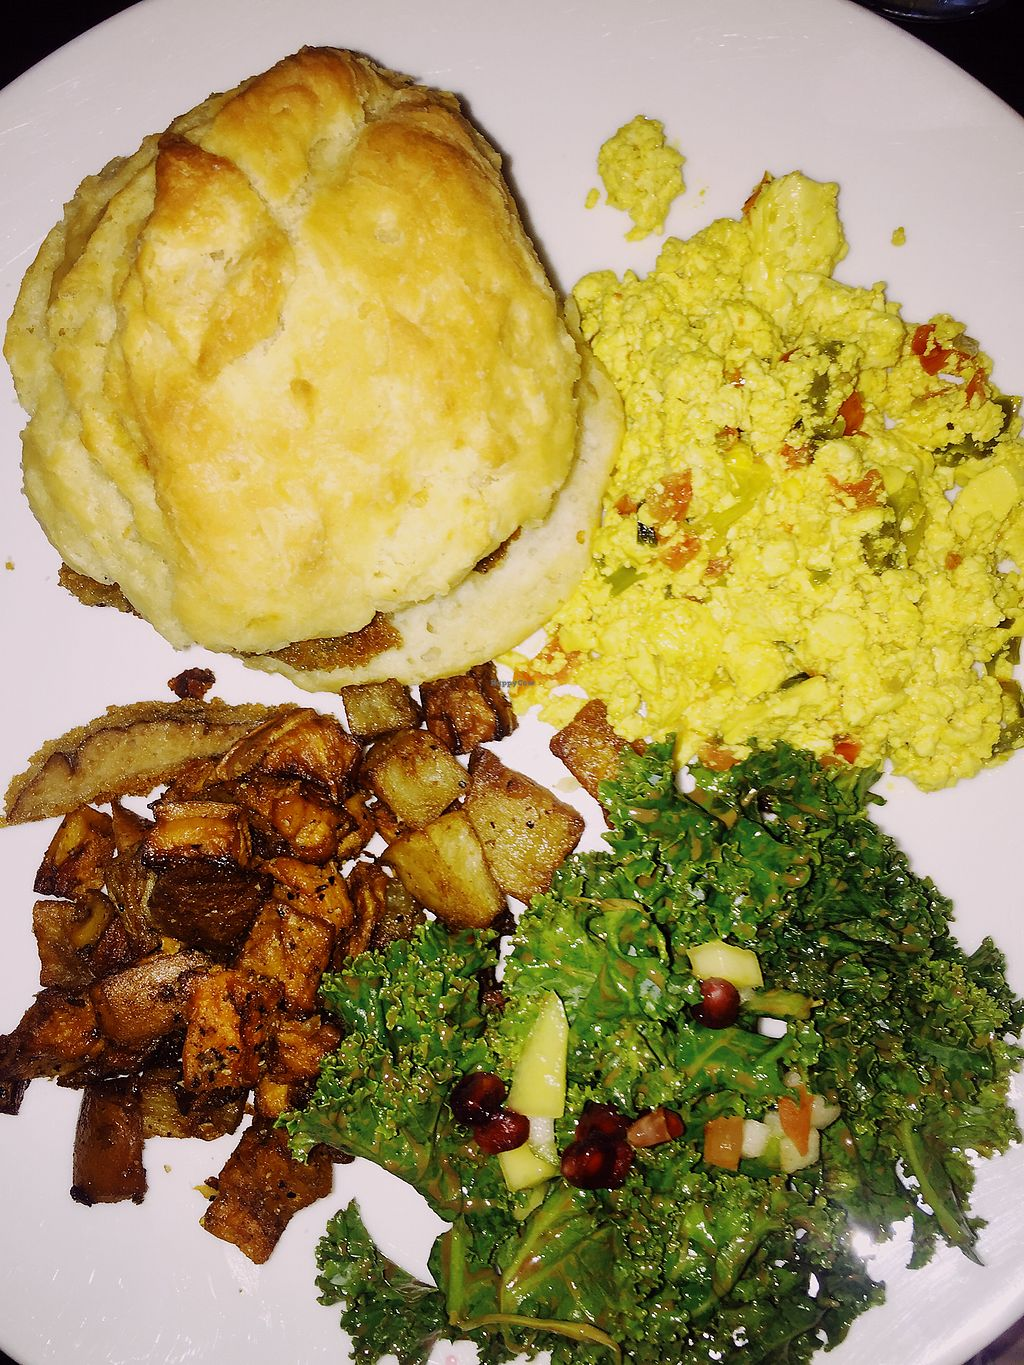 """Photo of Cafe Sunflower - Buckhead  by <a href=""""/members/profile/terrywashere"""">terrywashere</a> <br/>chicken biscuit, tofu scram, kale, potatoes.  <br/> July 3, 2017  - <a href='/contact/abuse/image/1875/276319'>Report</a>"""